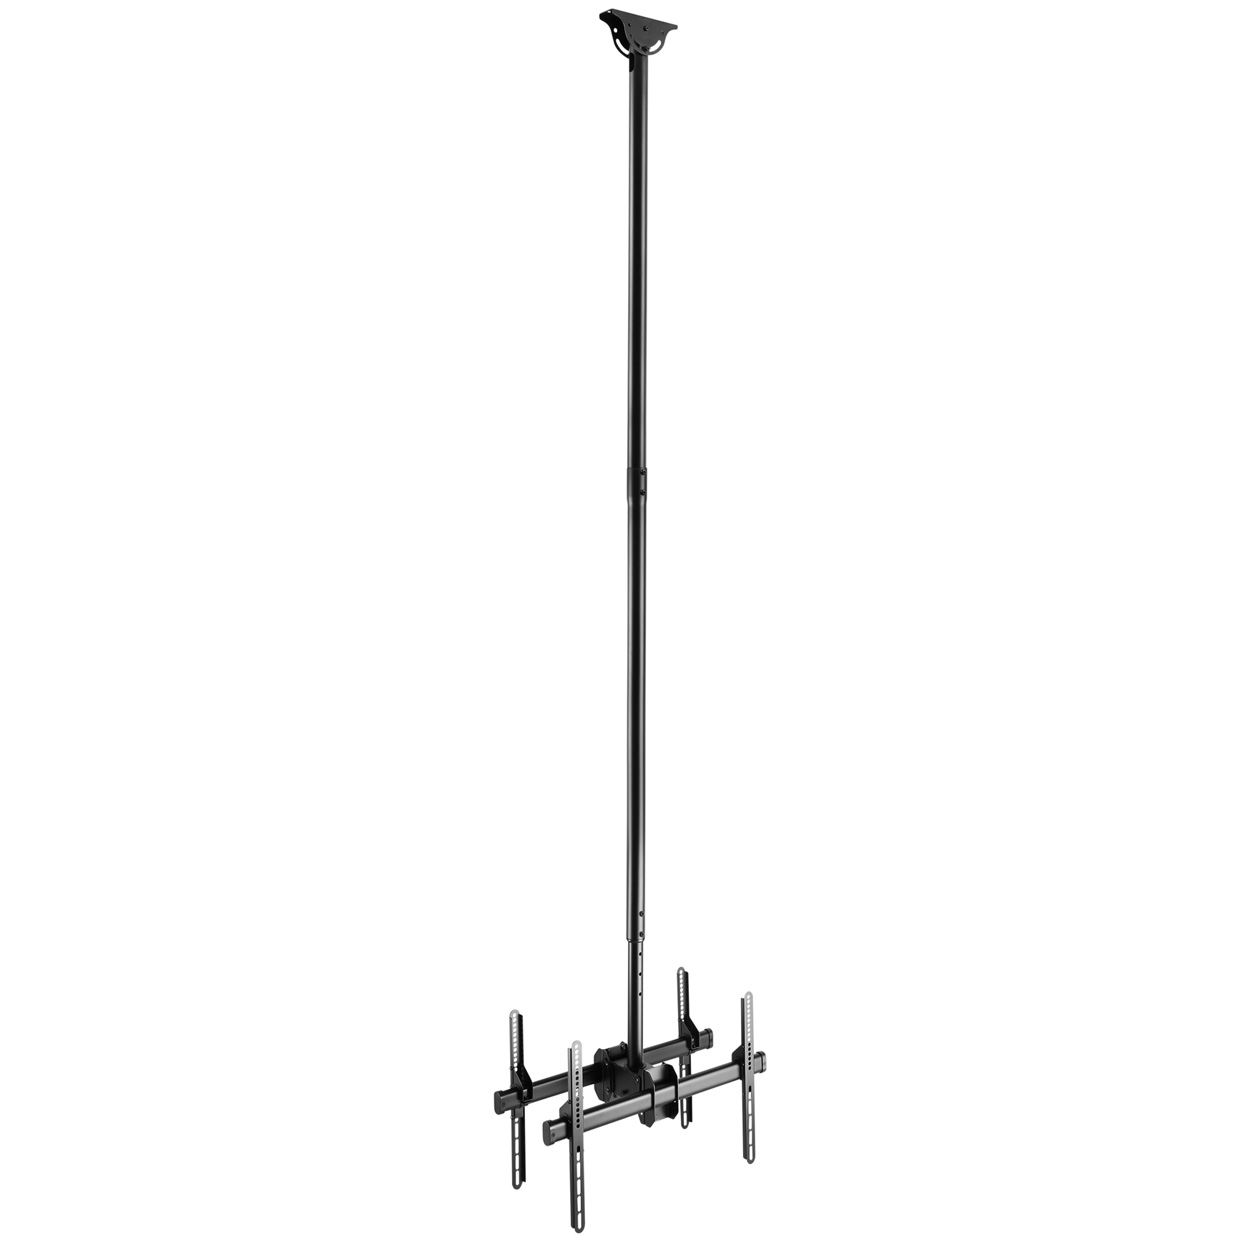 Double Side Ceiling Mount Tv Bracket With Tilt Swivel And Adjule Height For 37 70 Inch Screens Pi Manufacturing